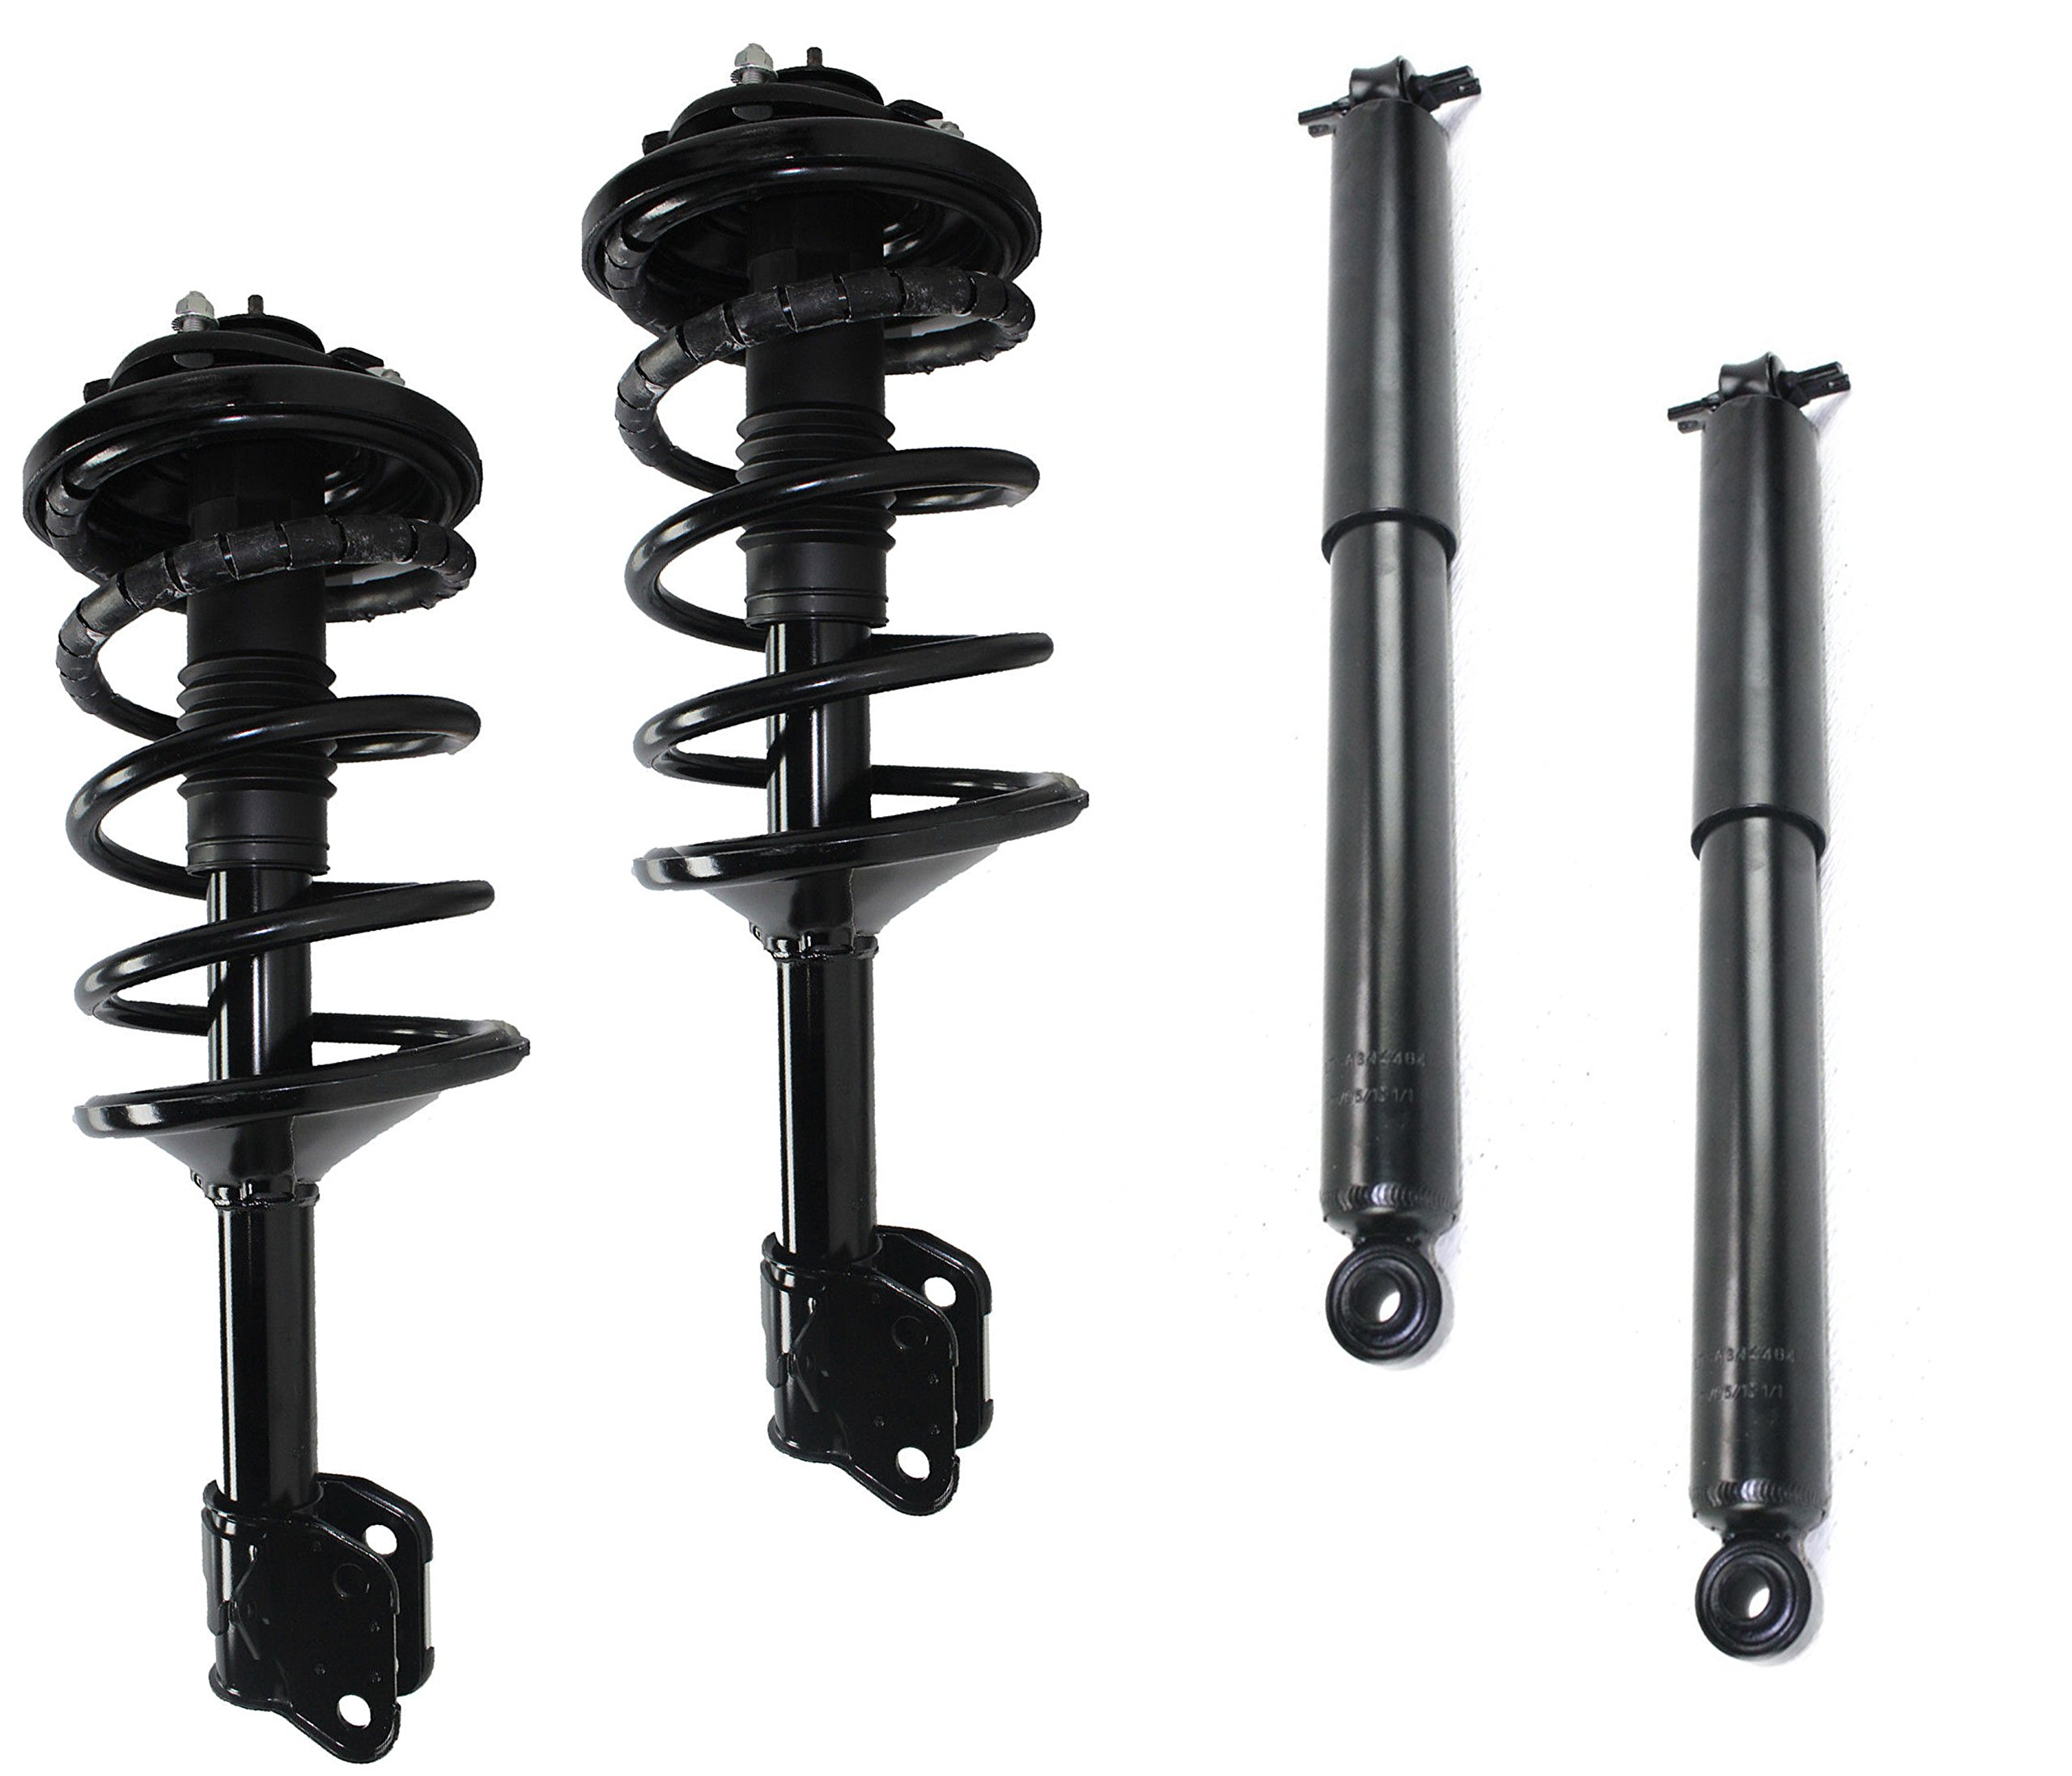 DTA 70119 Full Set 2 Front Complete Struts with Springs and Mounts + 2 Rear Shocks 4-pc Set, 2005-07 Honda Odyssey